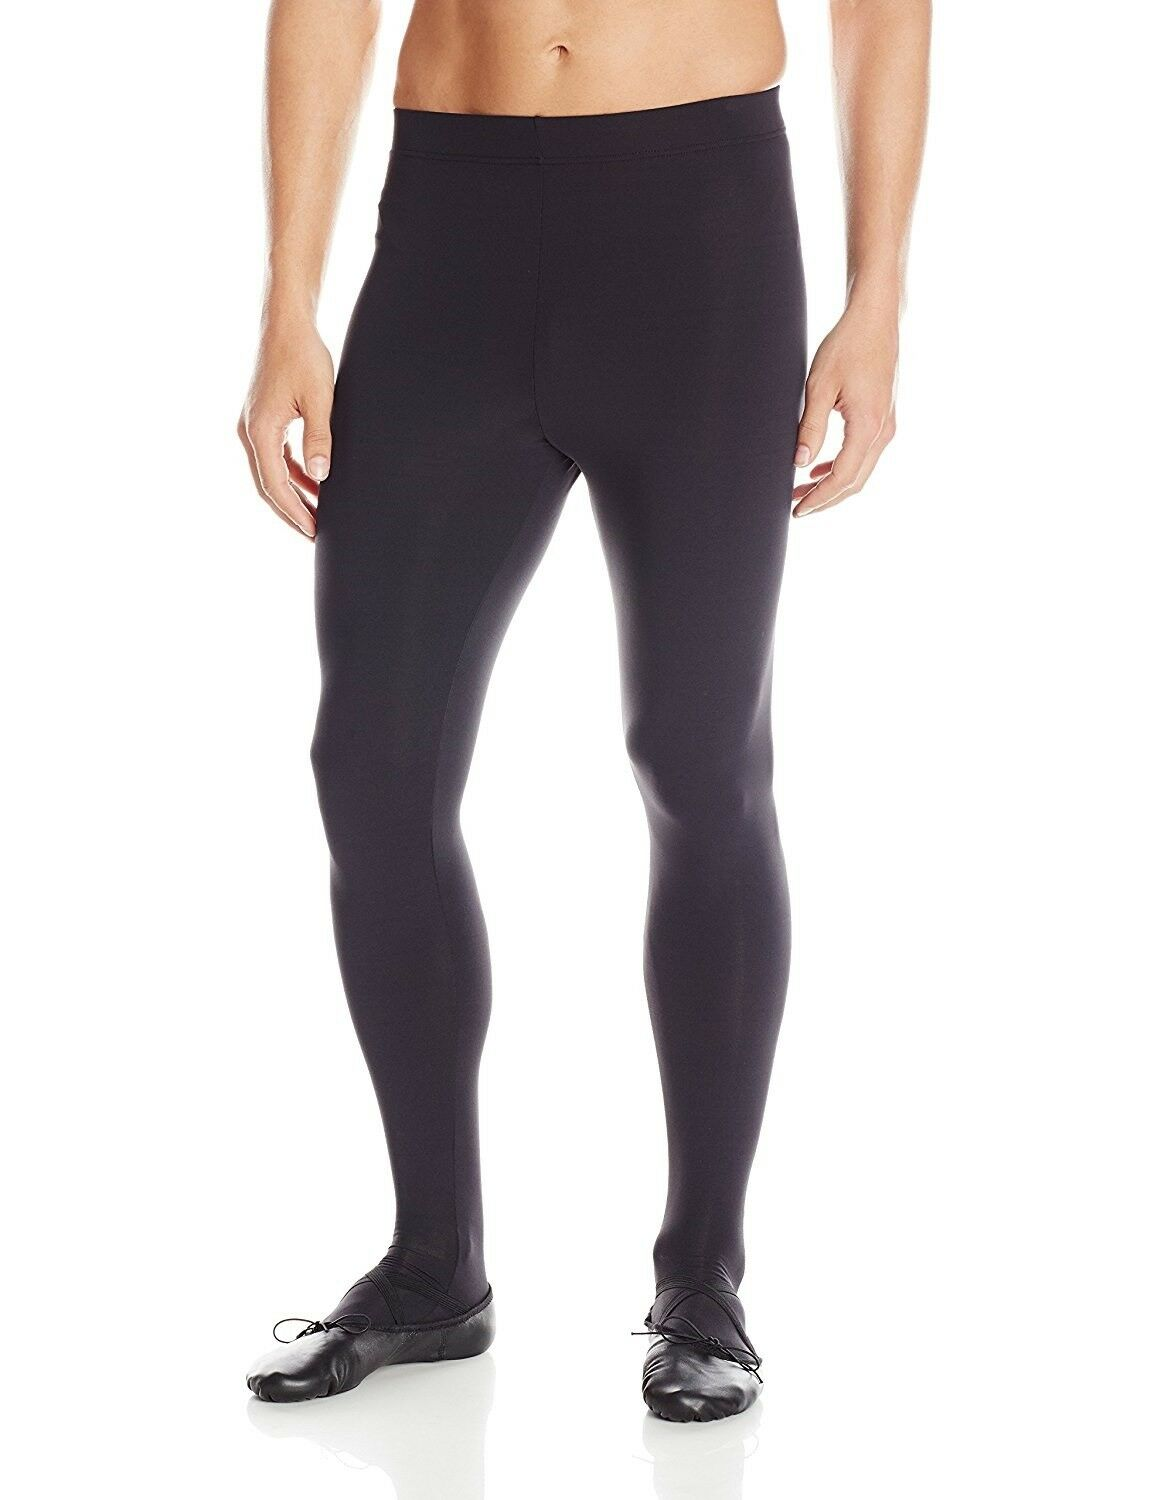 Capezio Men's Ultra Soft Footed Tights - 10361M